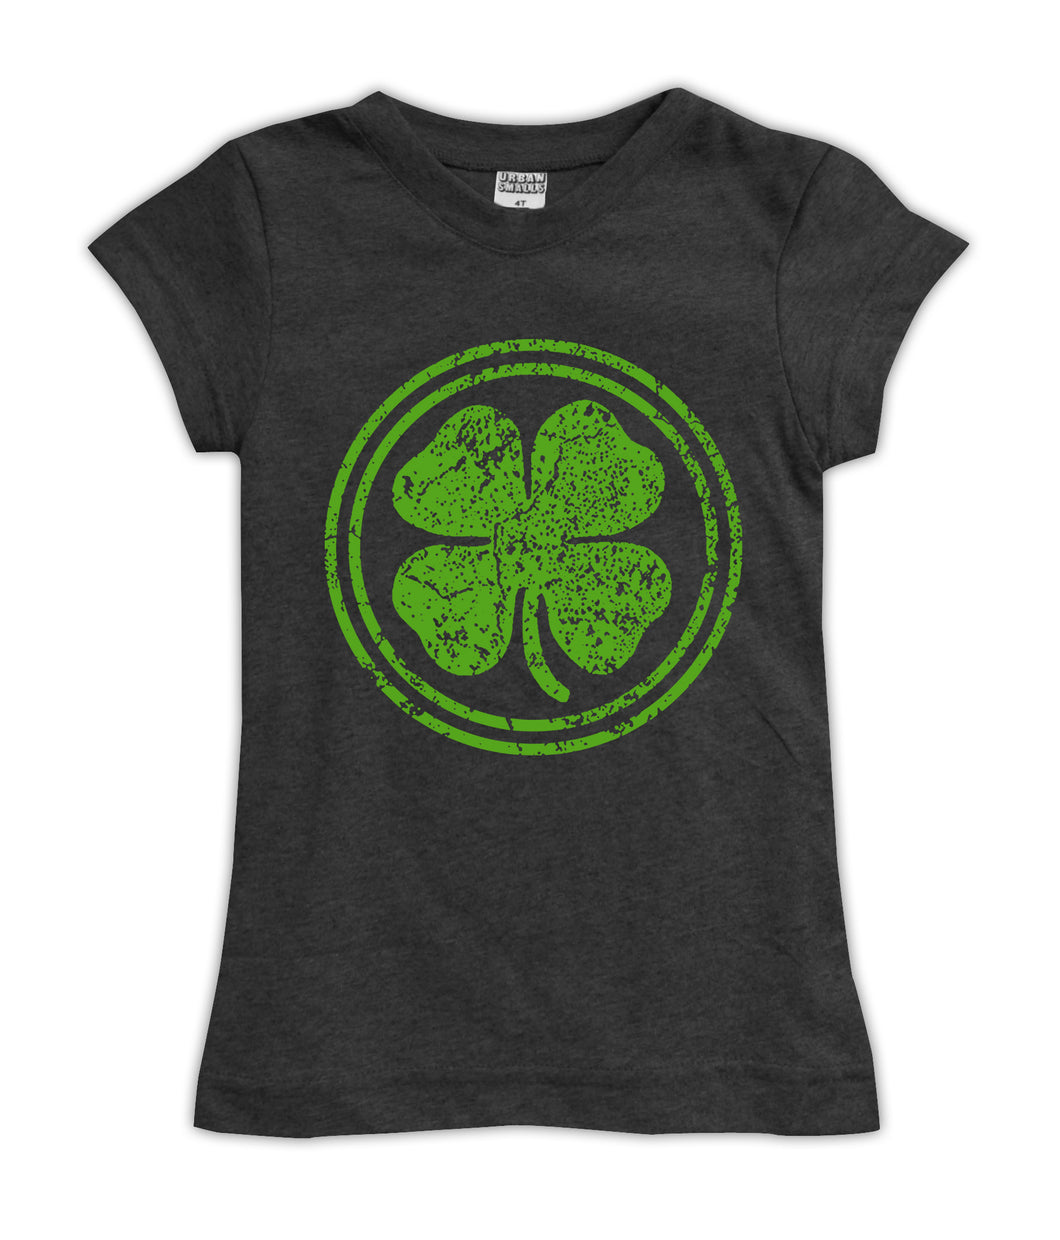 Charcoal Weathered Shamrock Fitted Tee